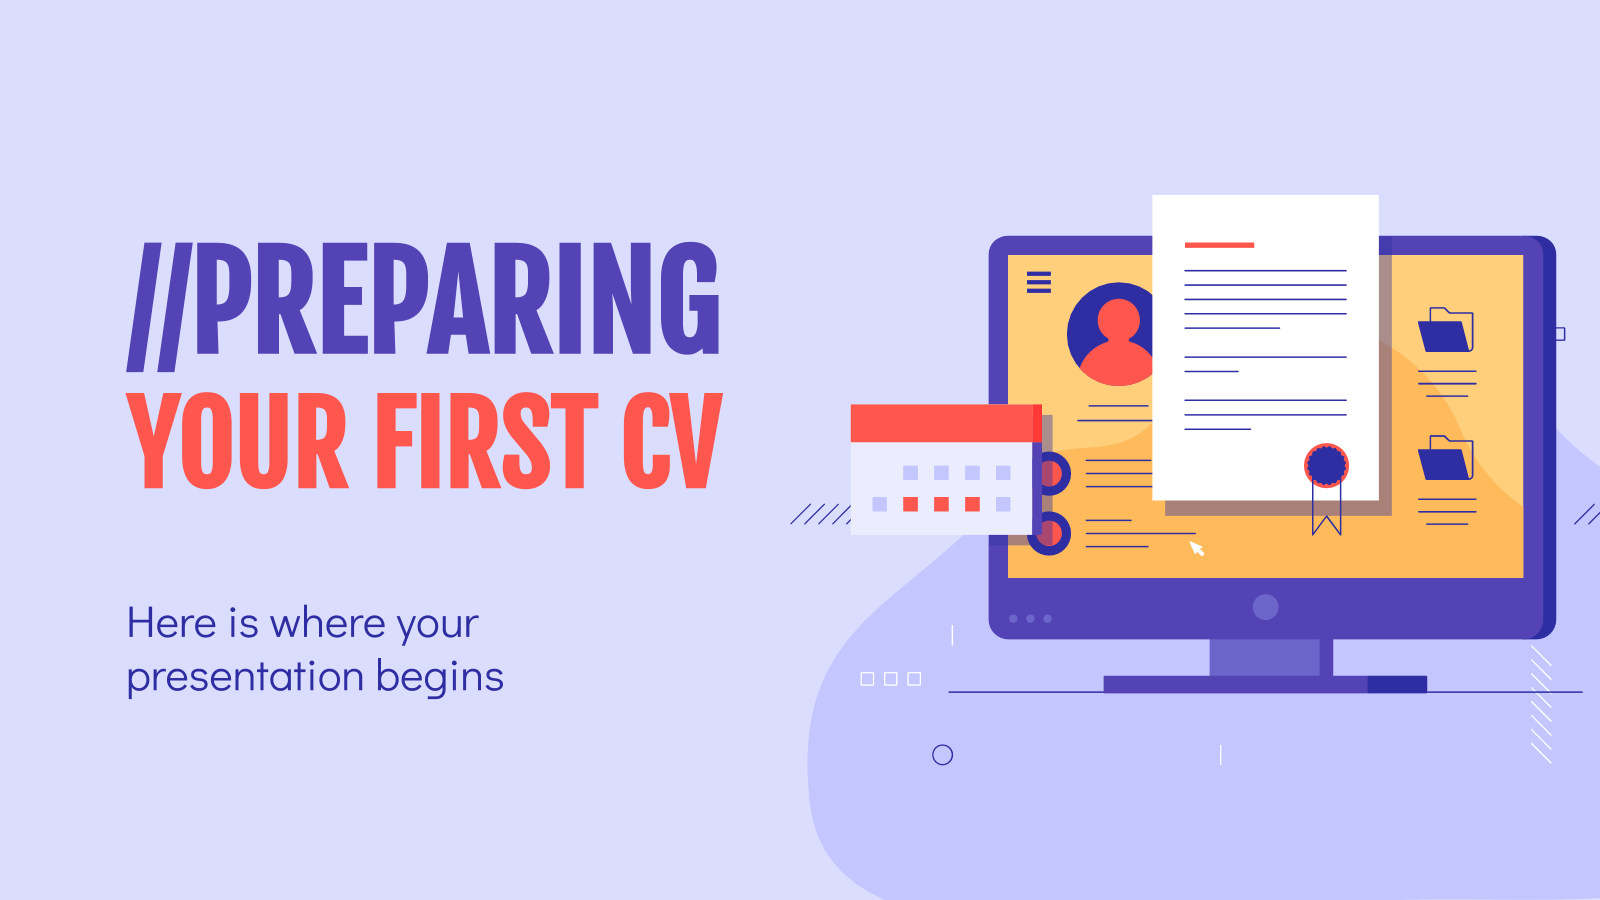 Preparing Your First CV presentation template